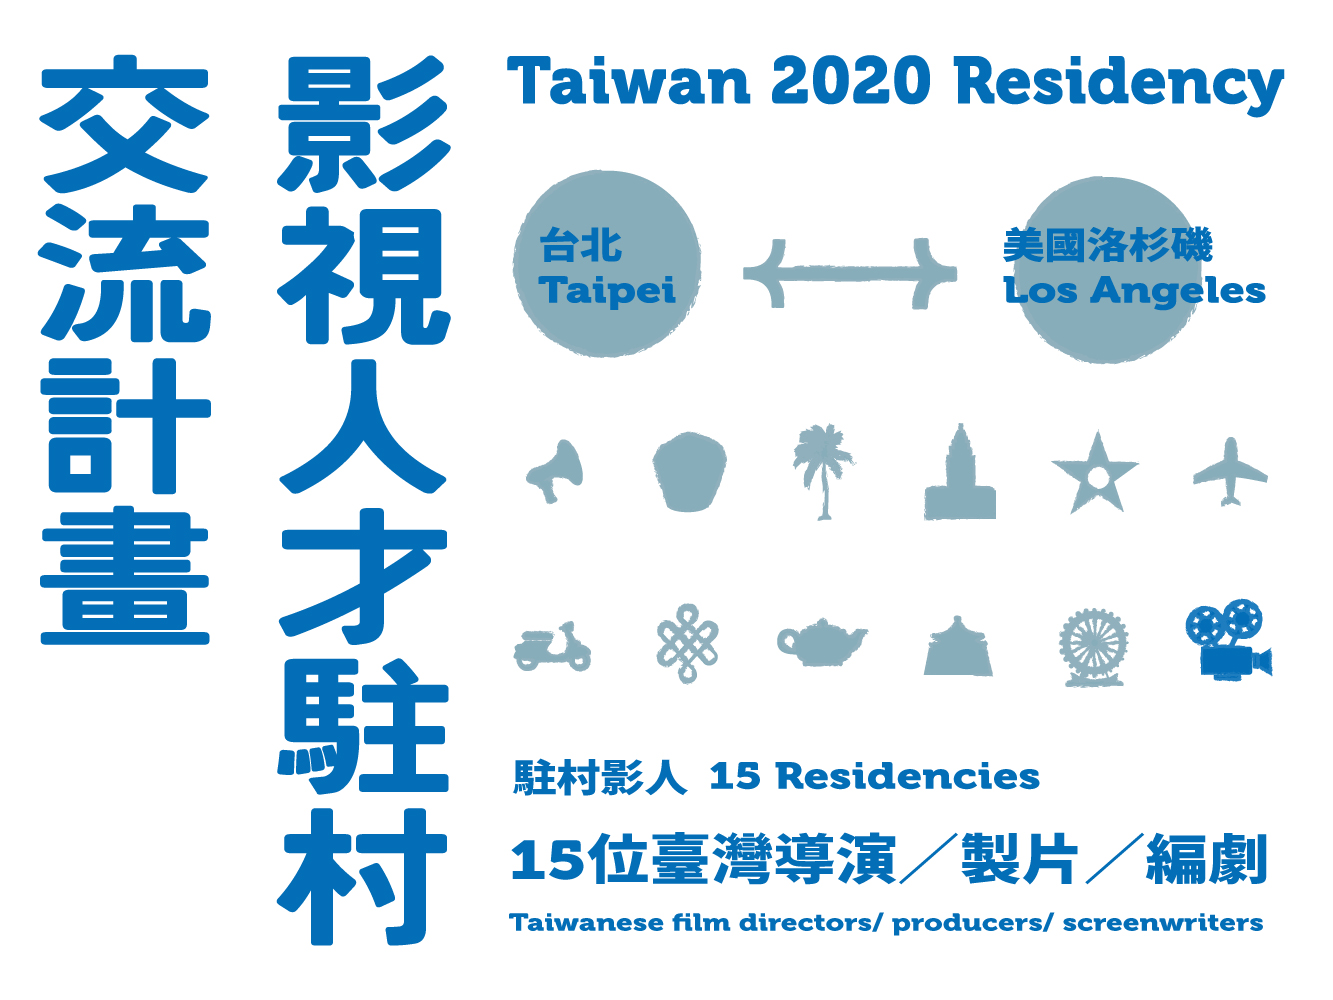 15 Taiwanese filmmakers selected for LA residency program